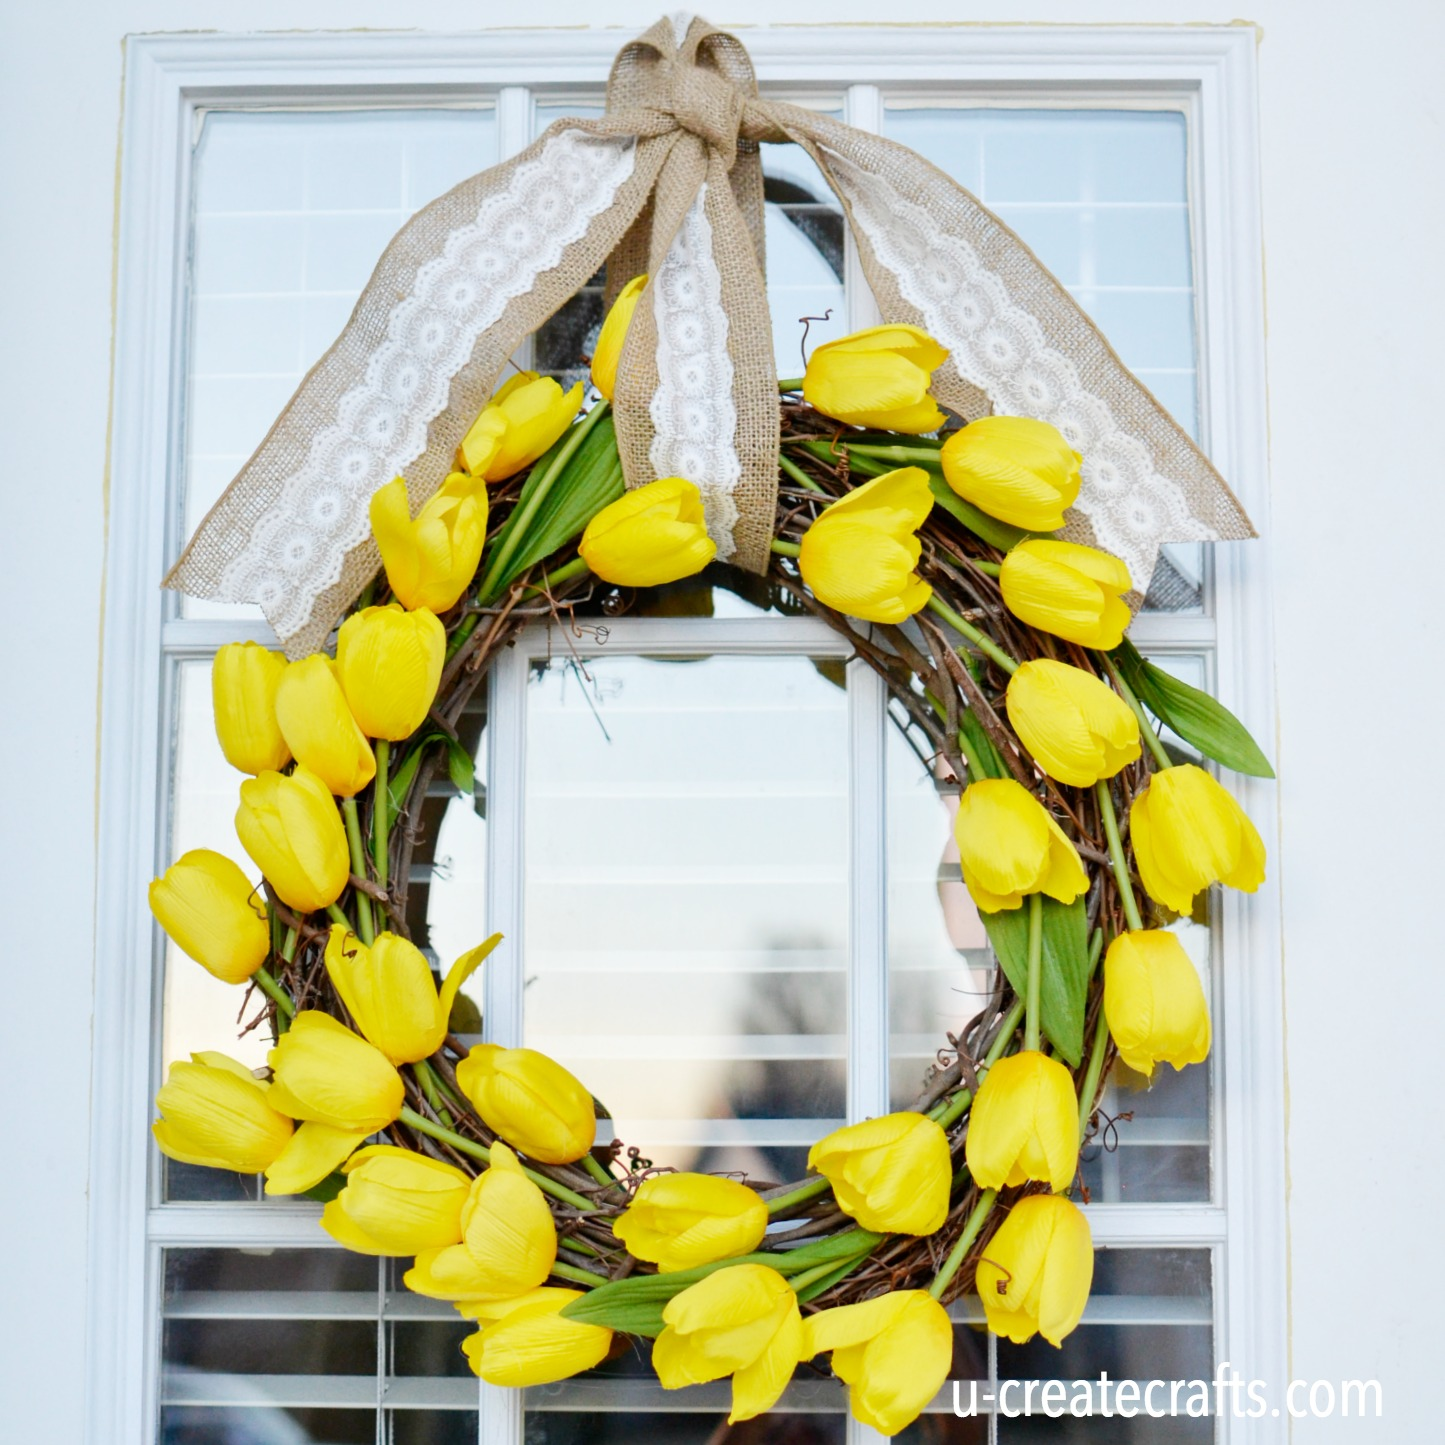 https://www.u-createcrafts.com/wp-content/uploads/2014/02/tulip-wreath.jpg